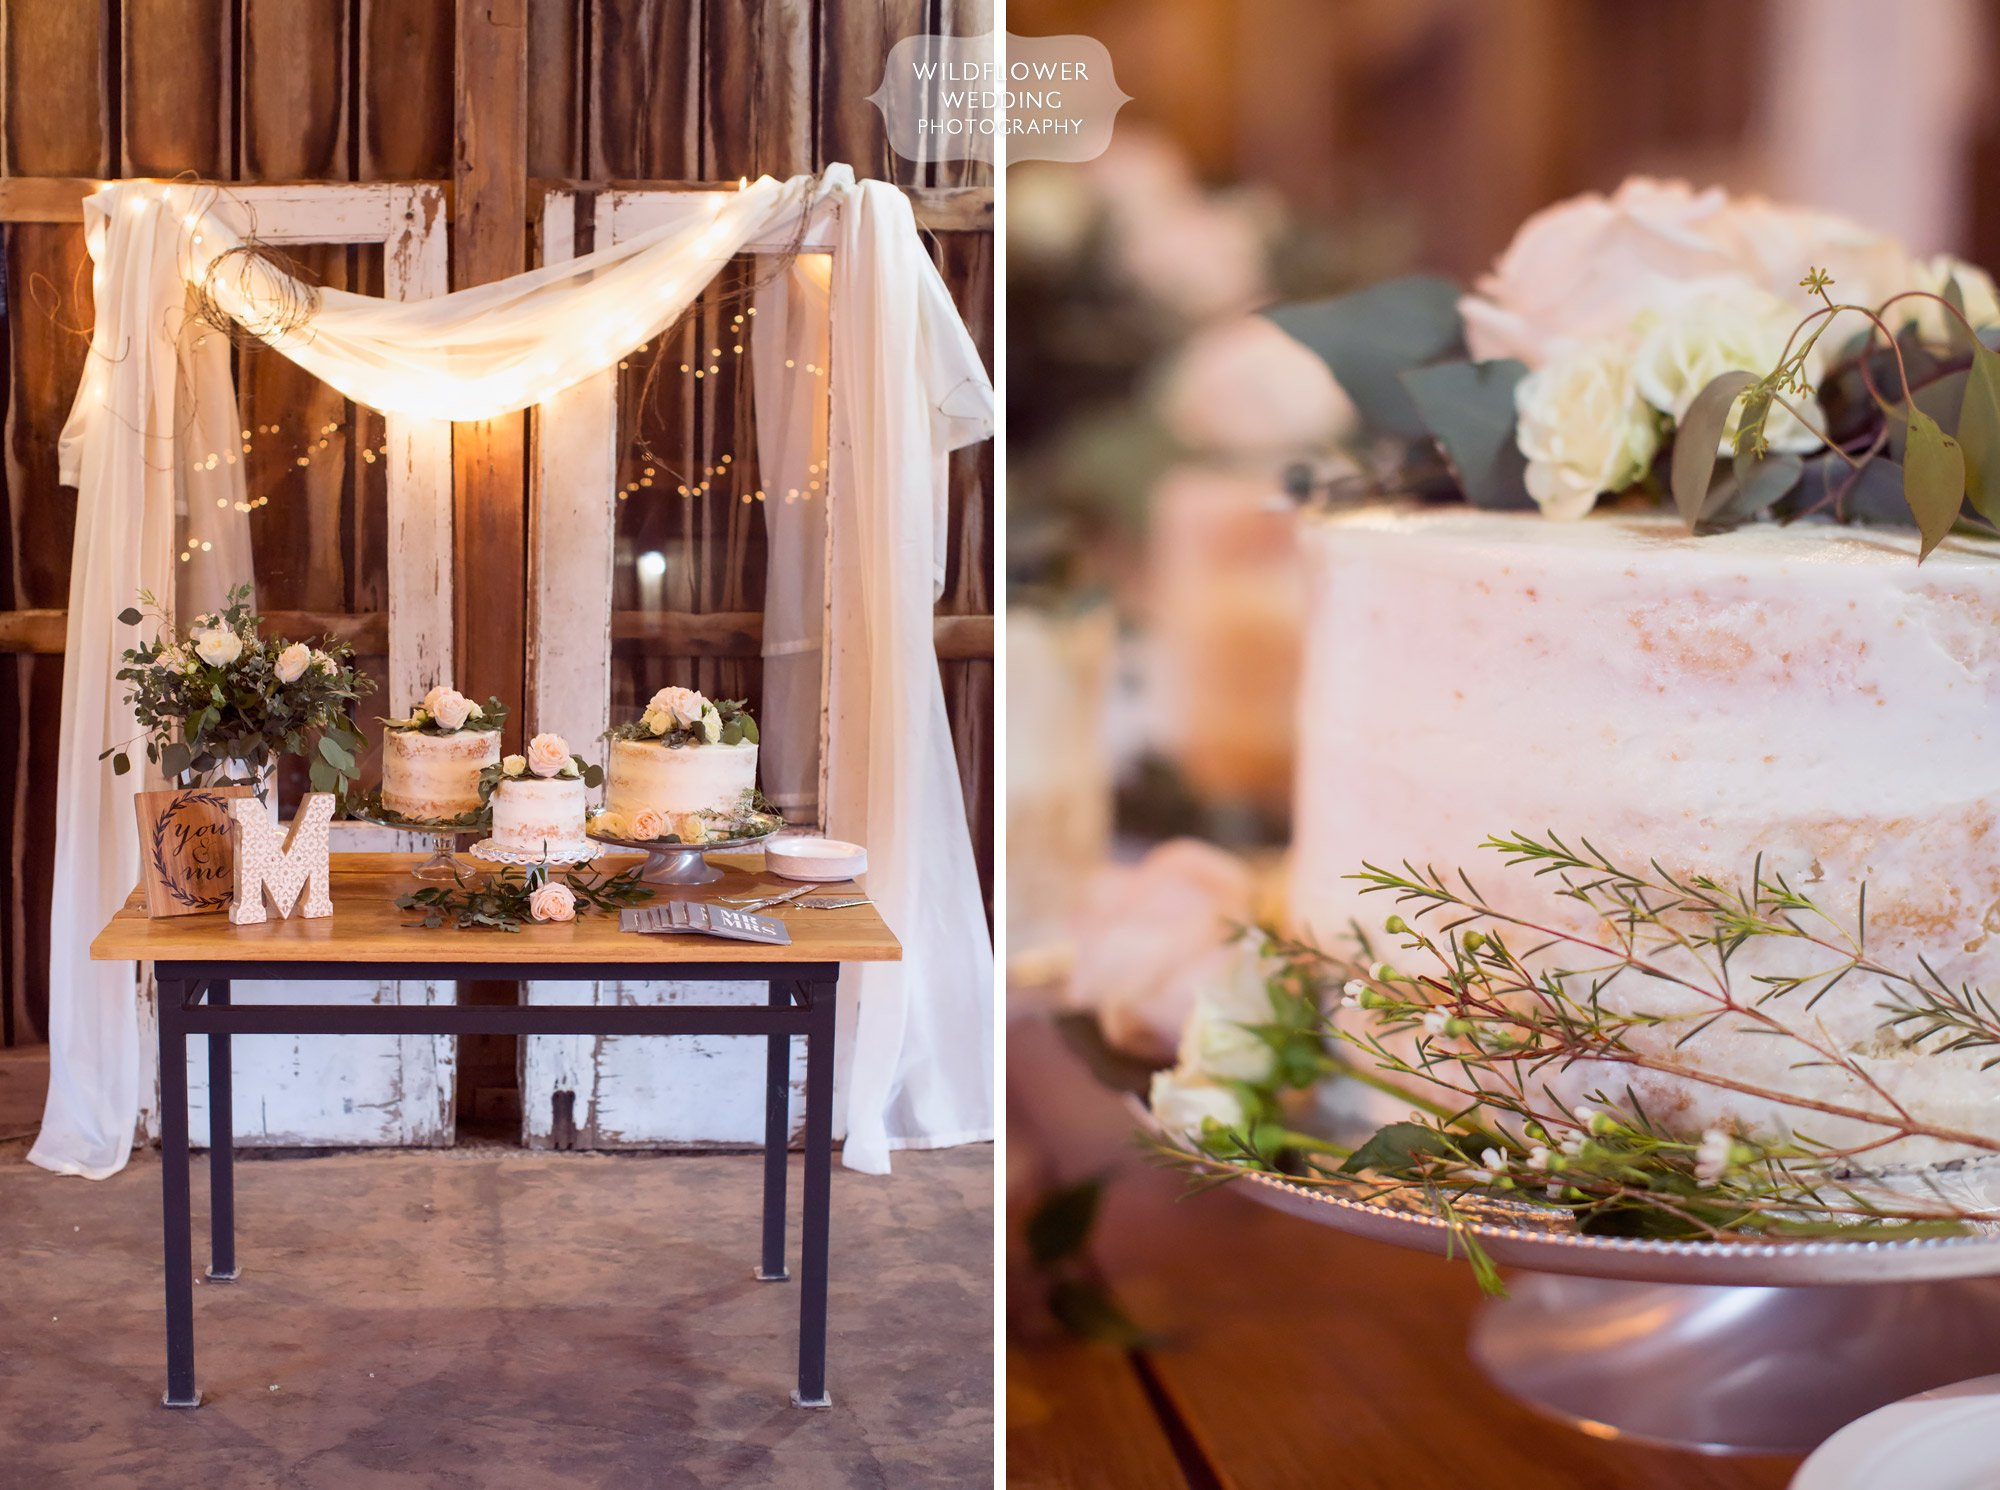 Naked wedding cakes on display with romantic lace and twinkle lights at this barn wedding at Kempker's Back 40 in southern MO.